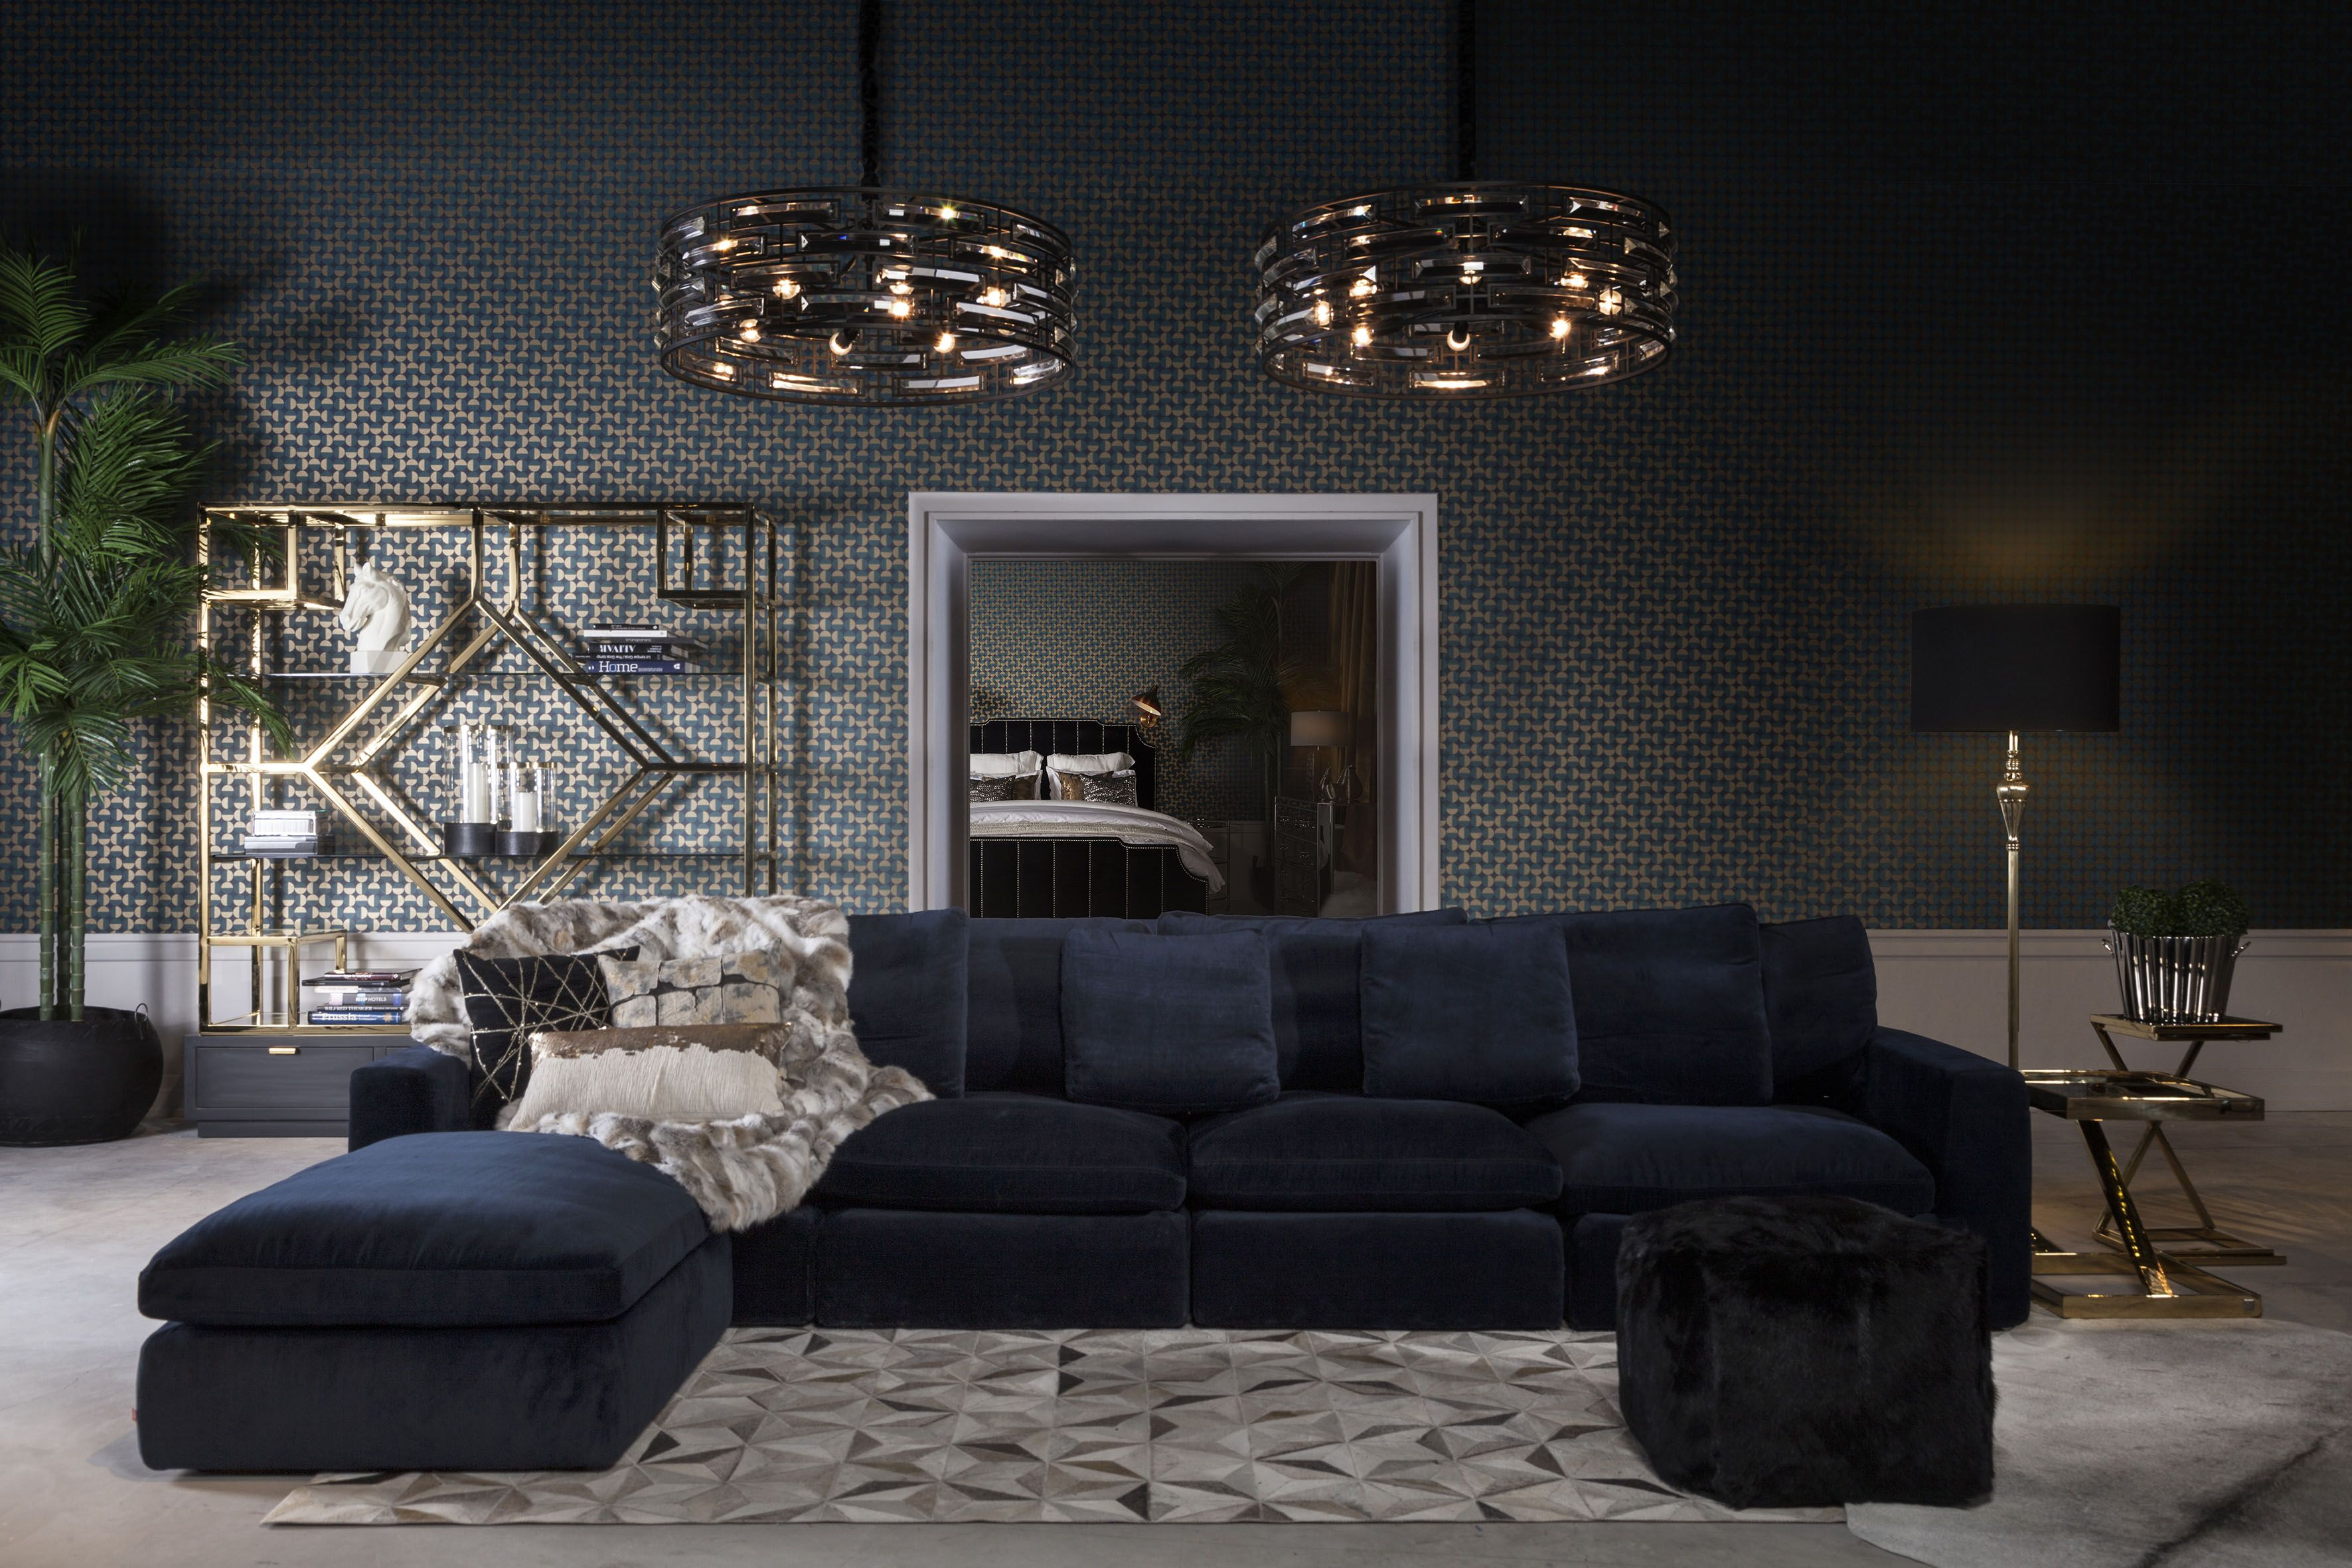 Living Rebelux A Home Look With A Distinct Identity That Is High End Exclusive And Edgy With A Lot Of Attitude Living Room Collections Home Decor Home